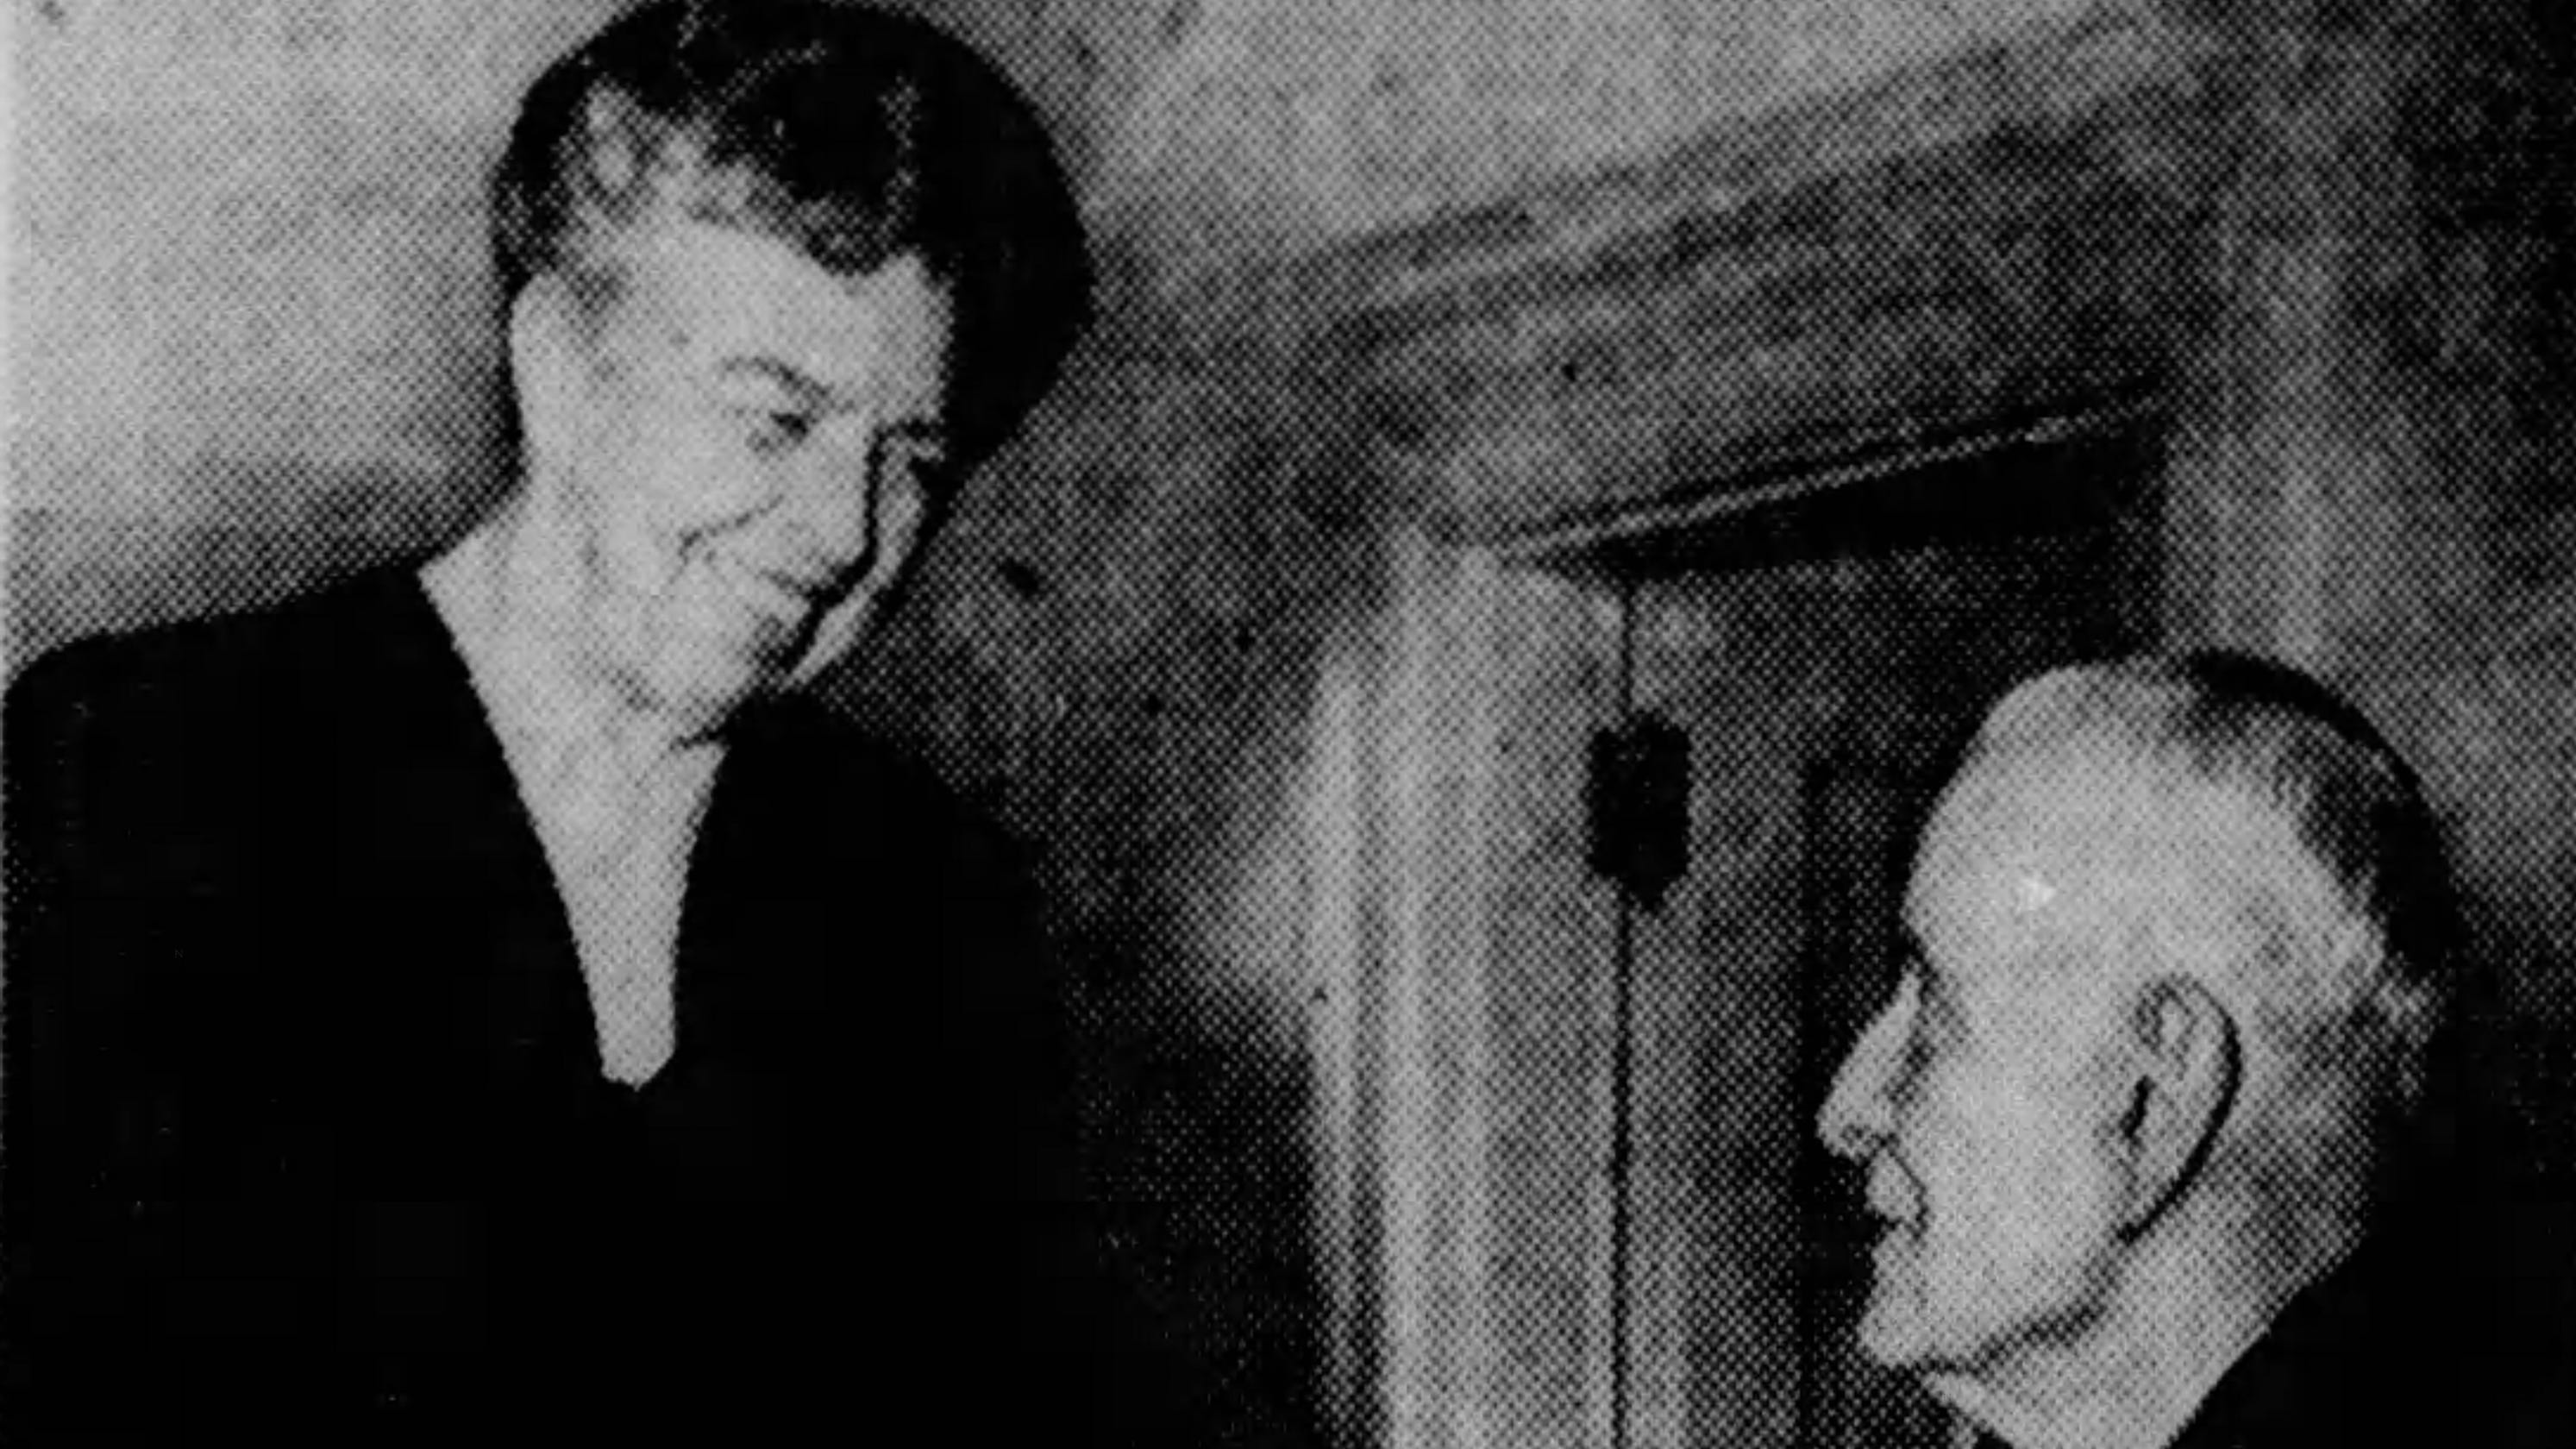 Eleanor Roosevelt made history around the world, and in upstate NY